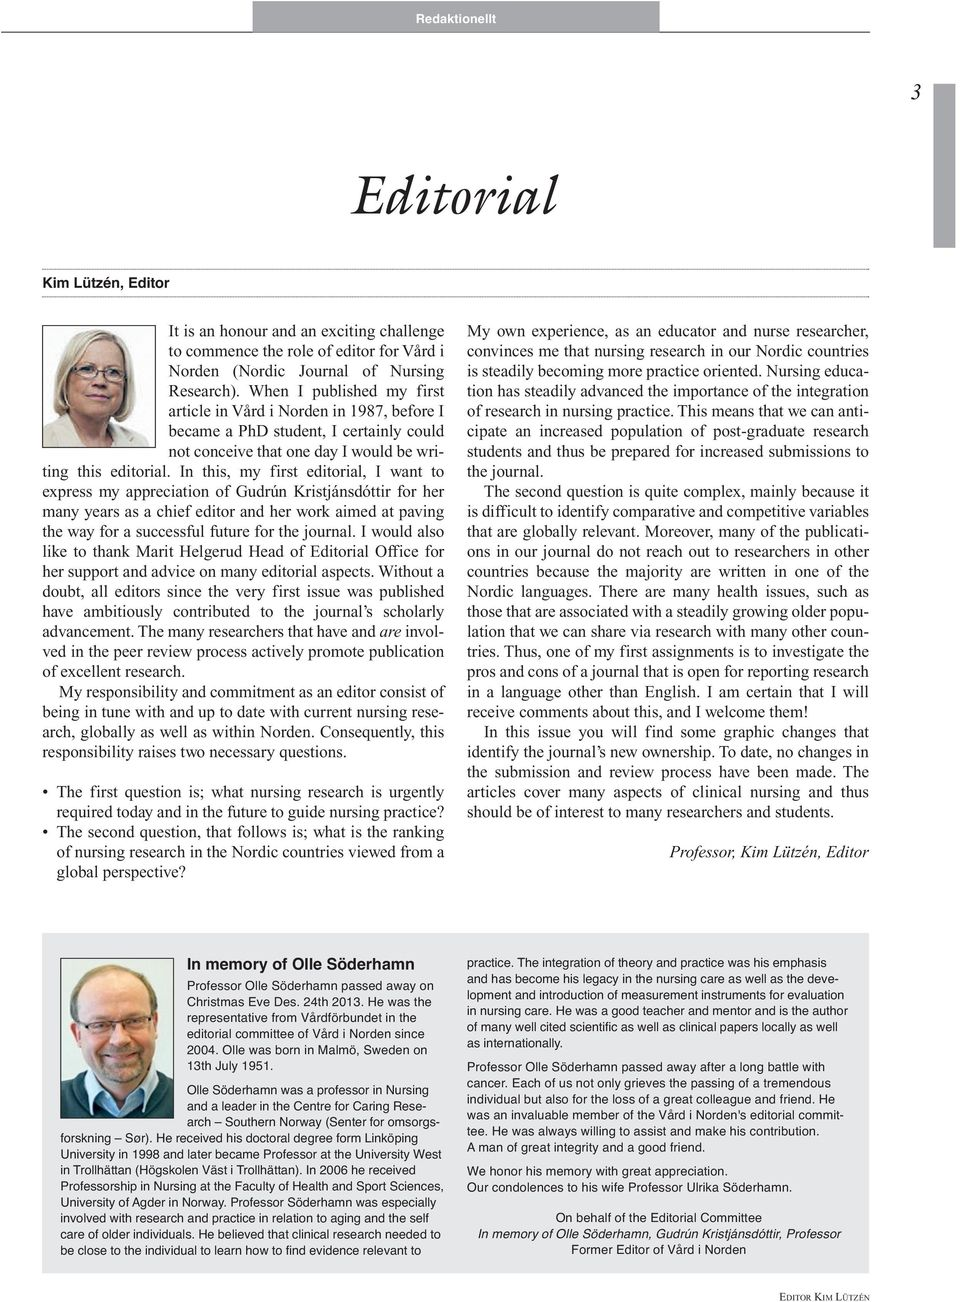 In this, my first editorial, I want to express my appreciation of Gudrún Kristjánsdóttir for her many years as a chief editor and her work aimed at paving the way for a successful future for the